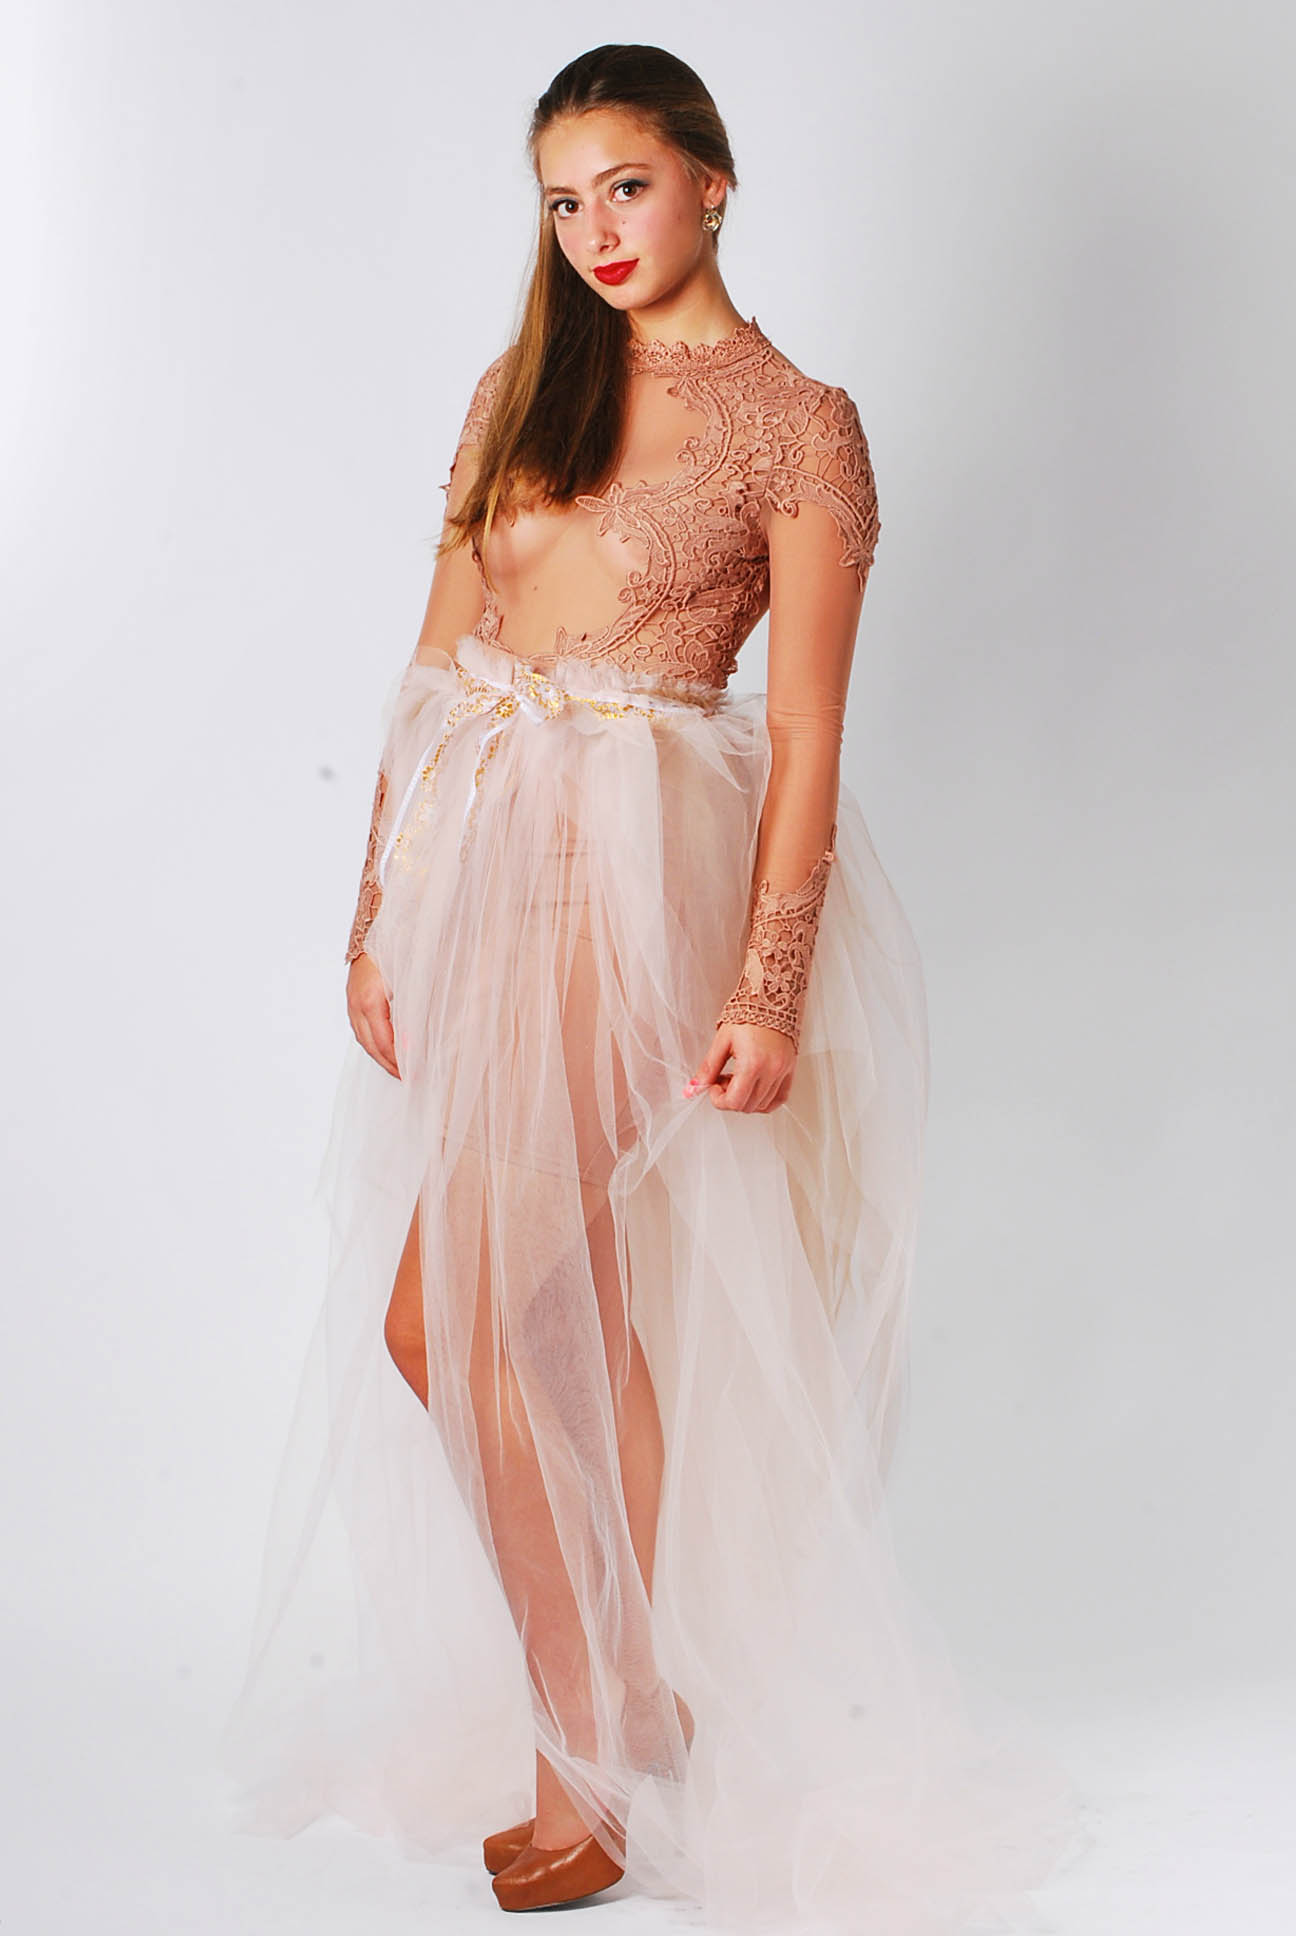 Long Wedding Dress, Prom Dress, Lace Dress, Chiffon Dress, Sexy Short Dress, Maxi Dress, Maxi Open Back Dress, Open Back Dress, Halter Dress, Summer Dress, Beach Dress, Resort Dress, Evening Dress, Black Gown, Printed Chiffon Dress, Digital Printed Dress, Strappy Dress, Asymmetric Dress, Long Sleeve Dress, Long Boho Dress, Boho Dress, Flow Dress, Adjustable Dress,Bridesmaid Dress, Resort Wedding Dress, Little Black Dress, White Ruffle Dress, Ruffle Dress, Maxi Cover Up, Full Length Cover Up,Halter Spaghetti Straps Dress, Mermaid Dress, Formal Dress, Ruffle Top, Scoop Neck, Sale, Sexy Prom Dress, Cocktail Dress, Party Dress, Sexy Dress, Backless Dress, Women Dress, Long Dress, Slit Dress, couture dress, couture gown, sexy gown, gold dress